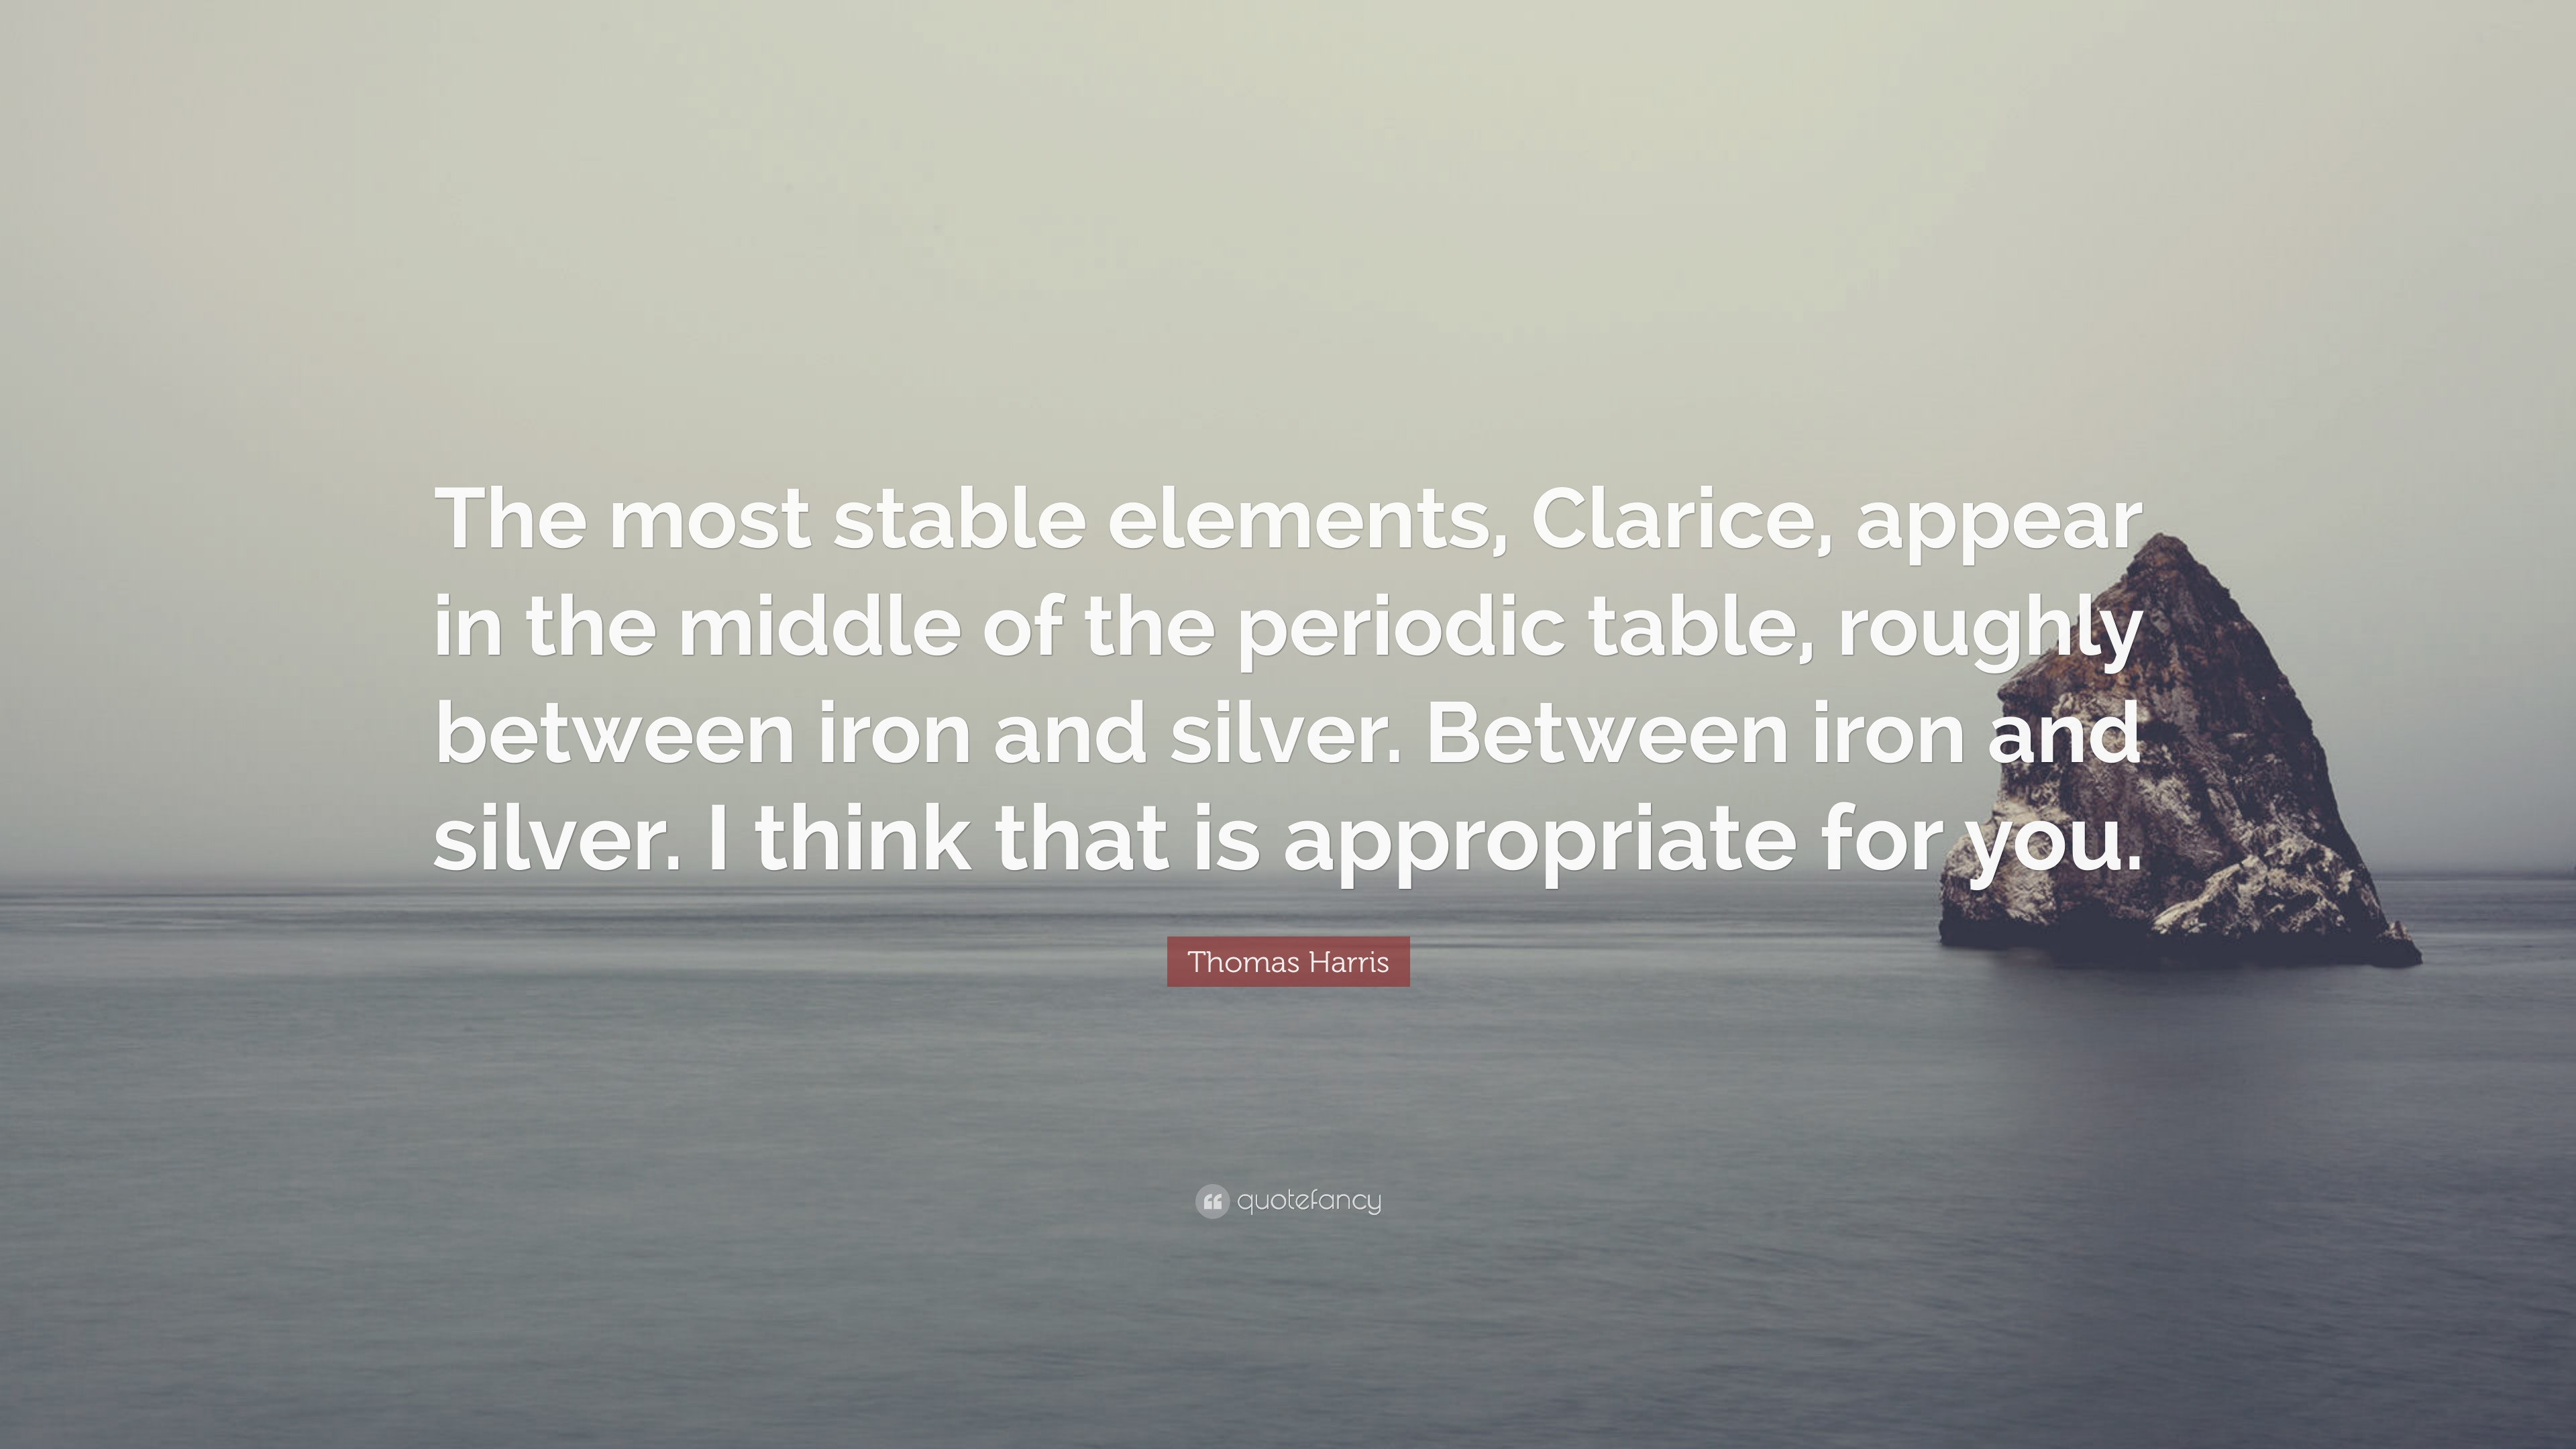 Thomas harris quote the most stable elements clarice appear in thomas harris quote the most stable elements clarice appear in the middle urtaz Images